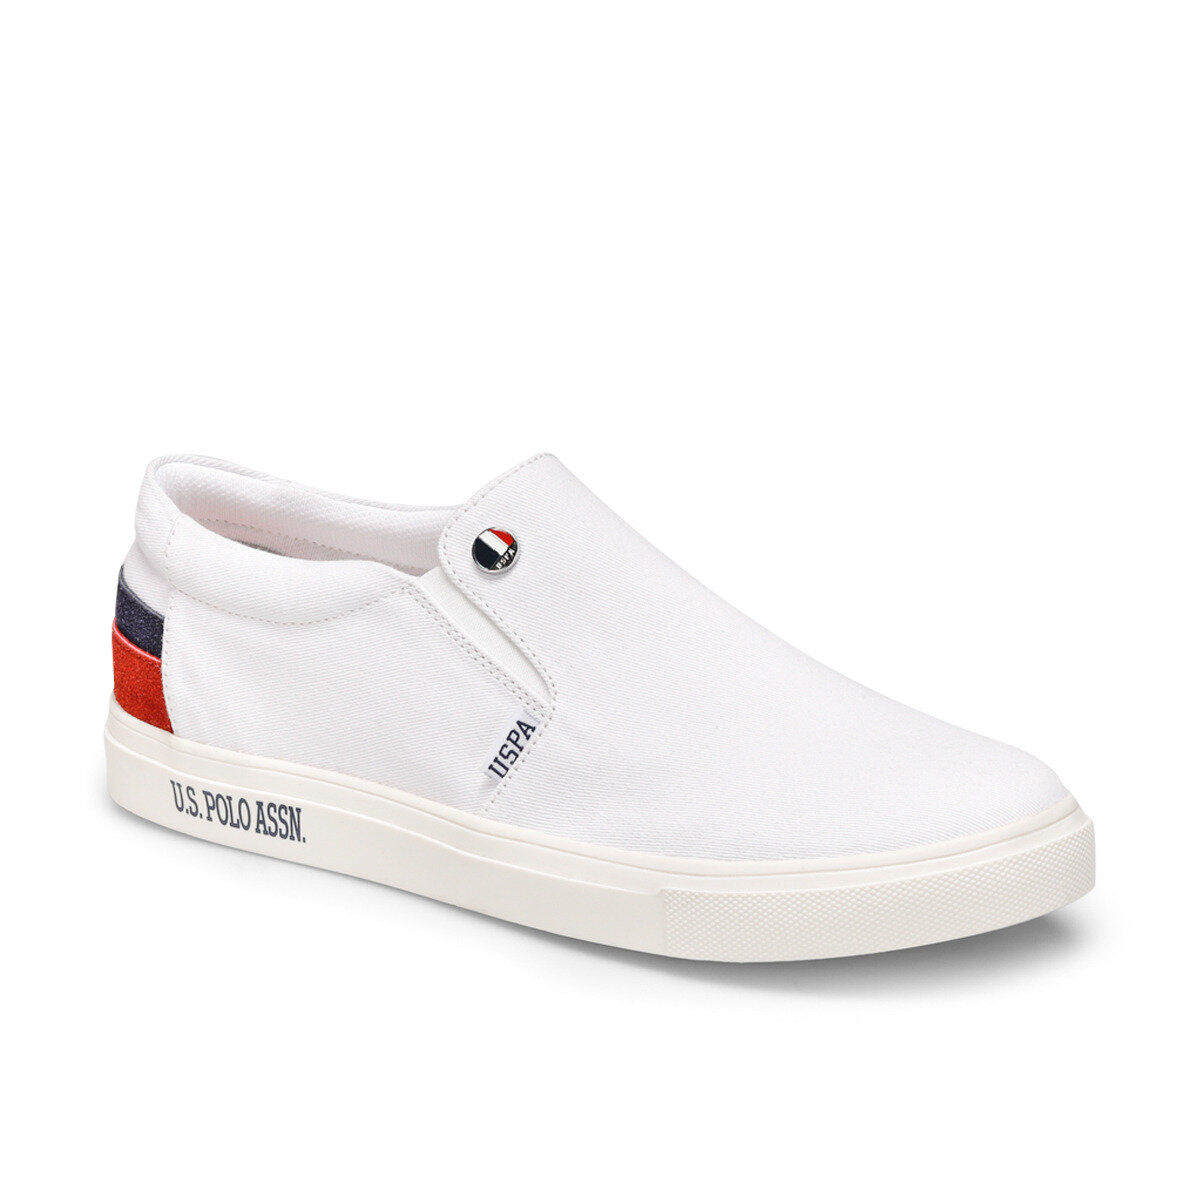 FLO LOVONO White Slip On Shoes U.S. POLO ASSN.